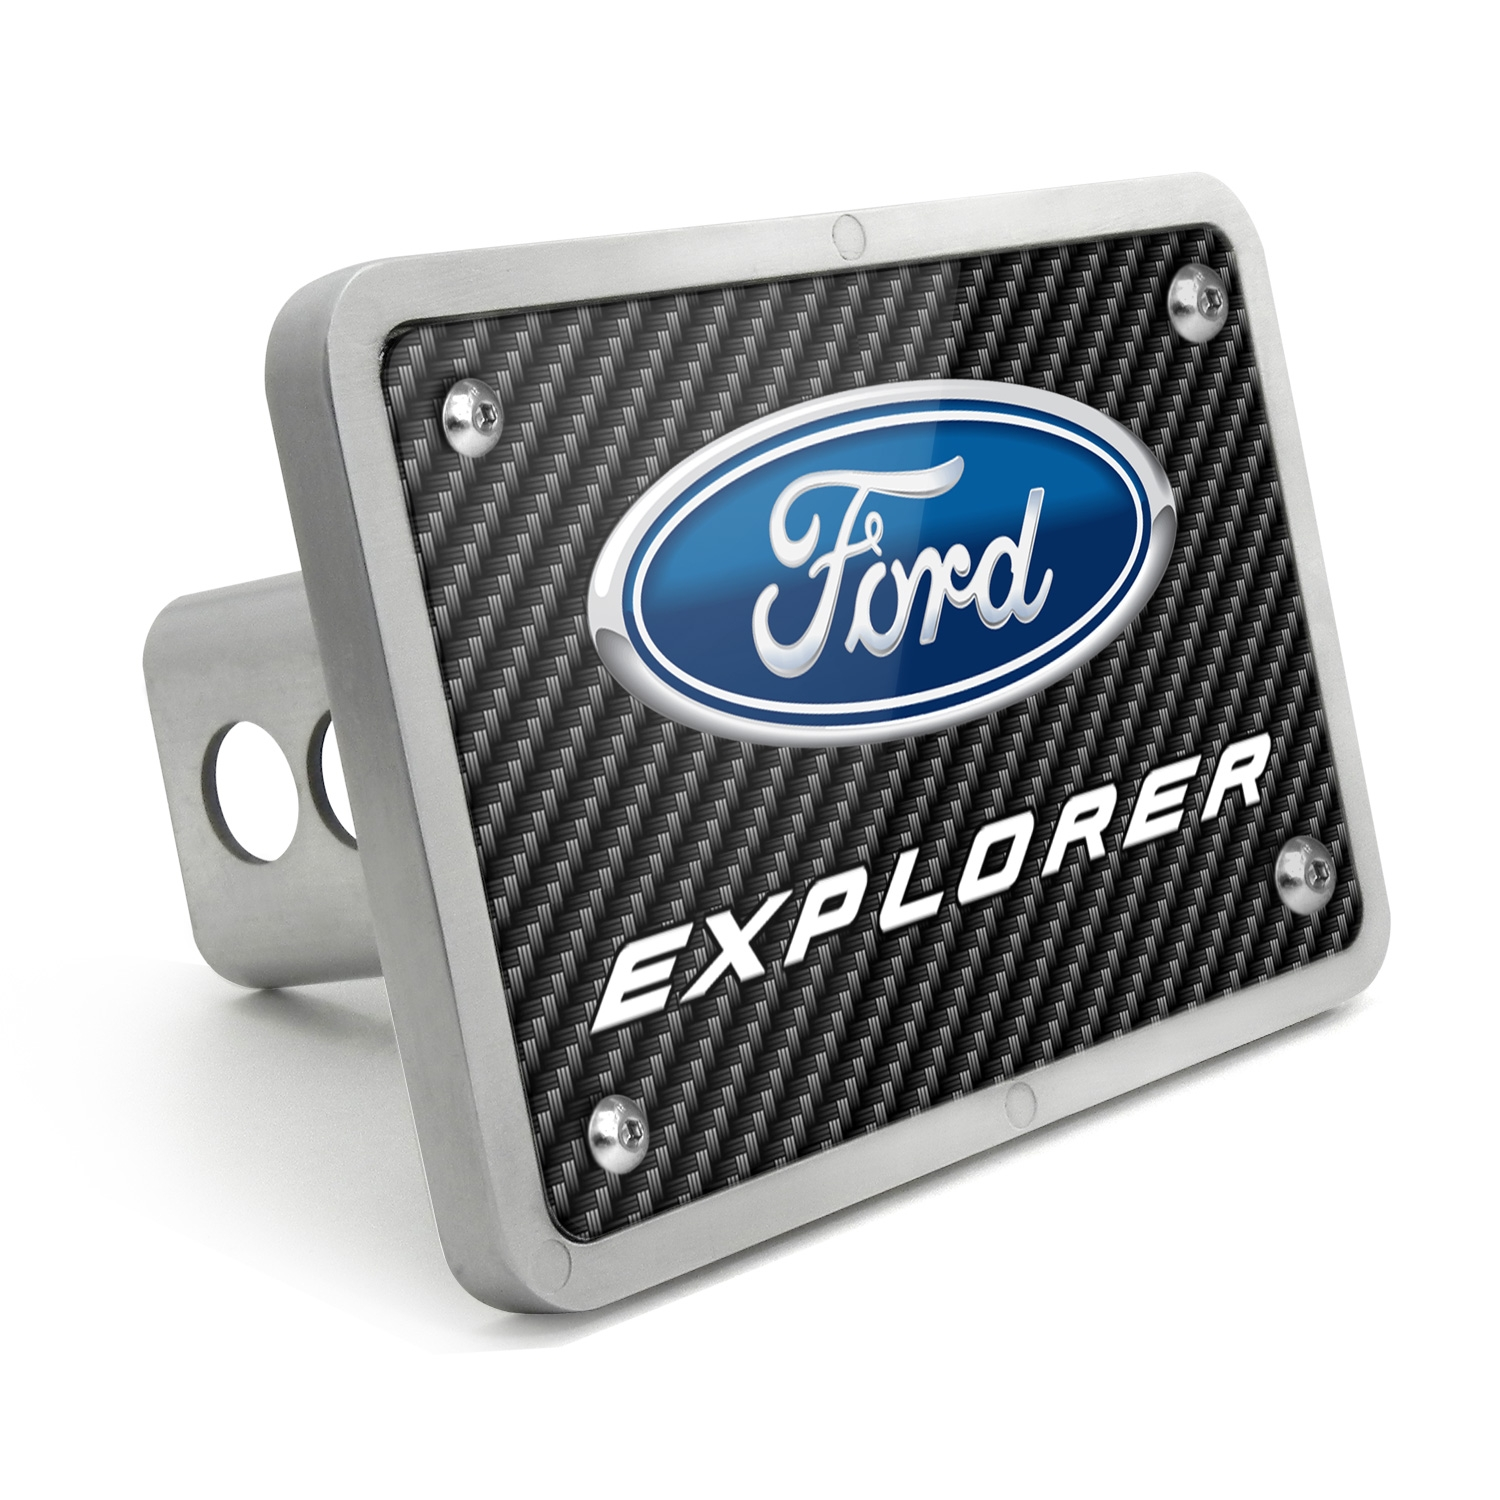 Ford Explorer Black Carbon Fiber Texture Plate Billet Aluminum 2 inch Tow Hitch Cover